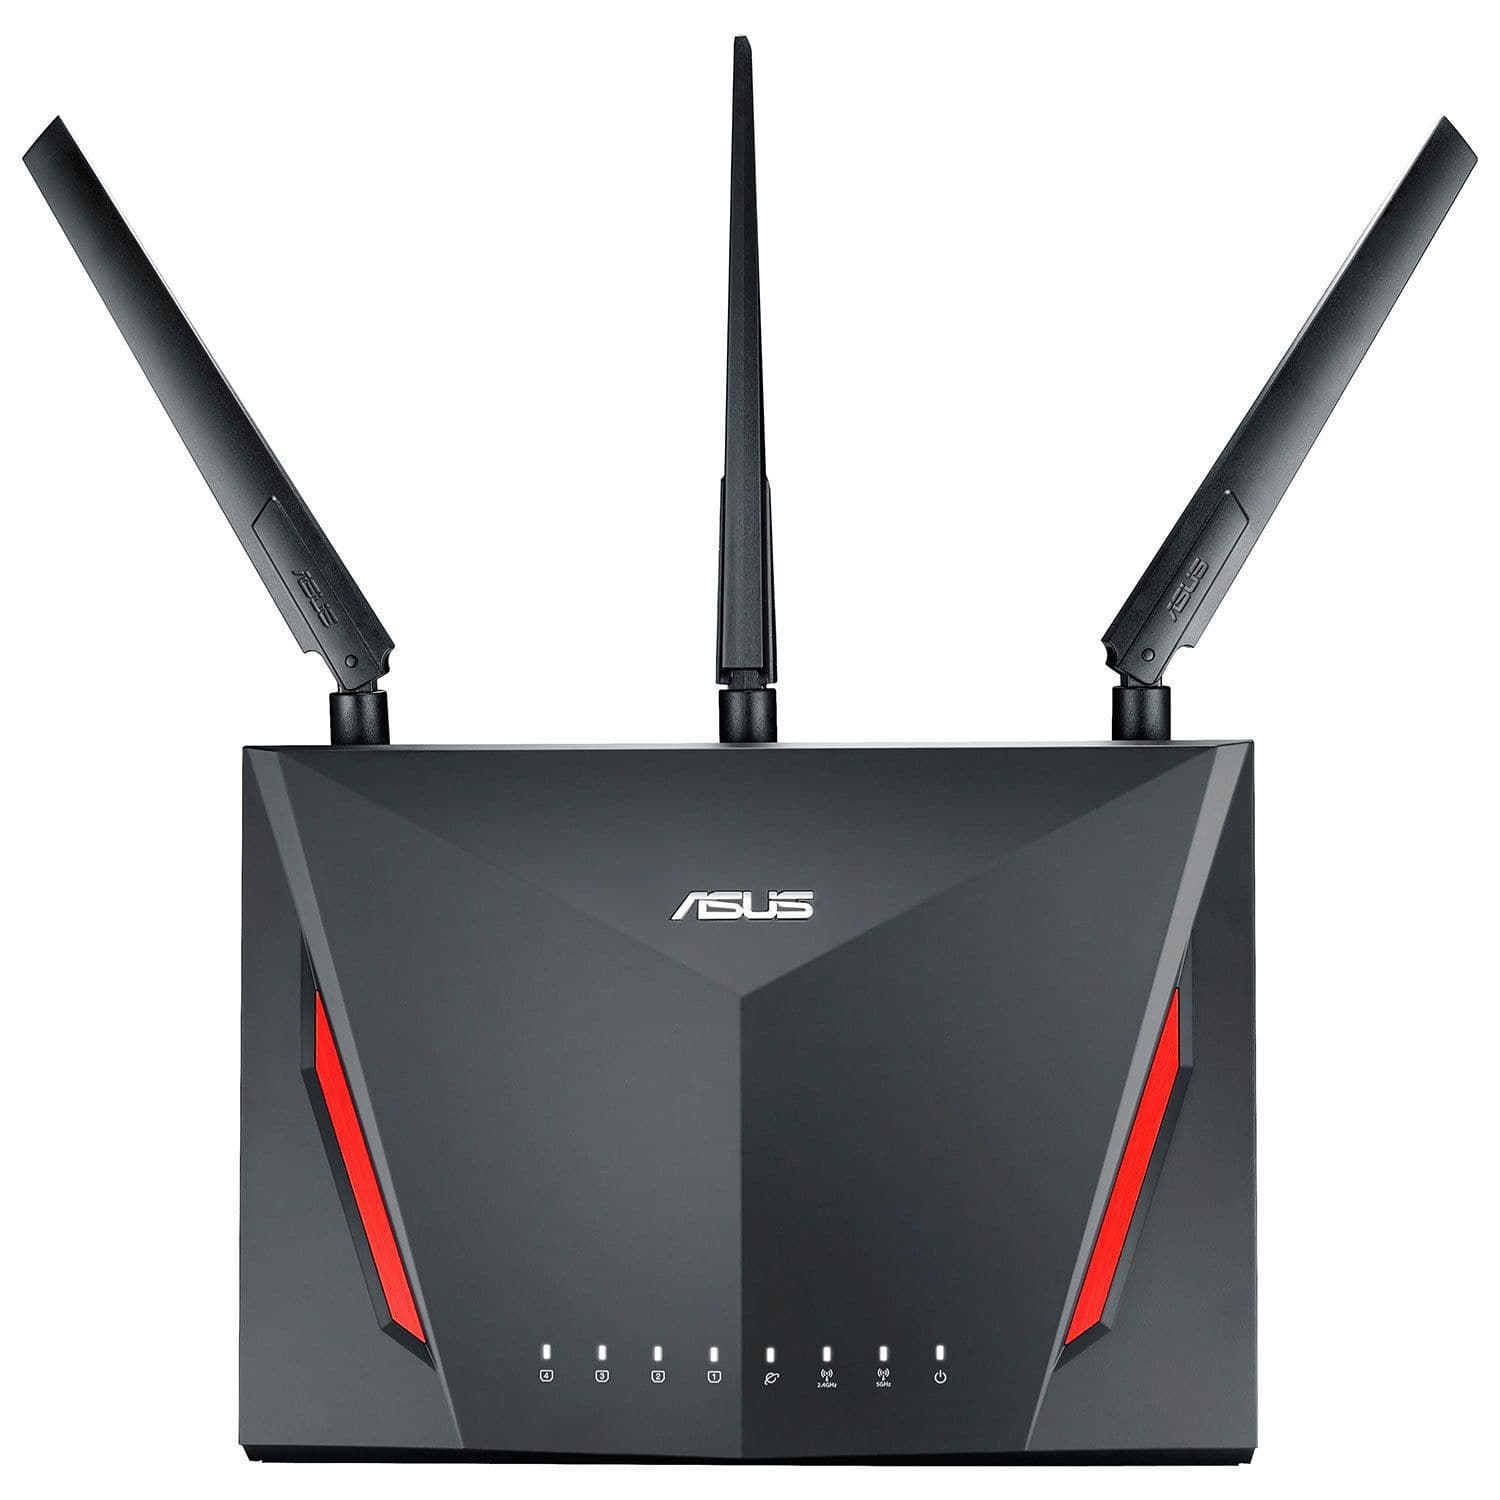 ASUS Wireless AC2900 Dual-Band Gigabit Router (RT-AC86U)